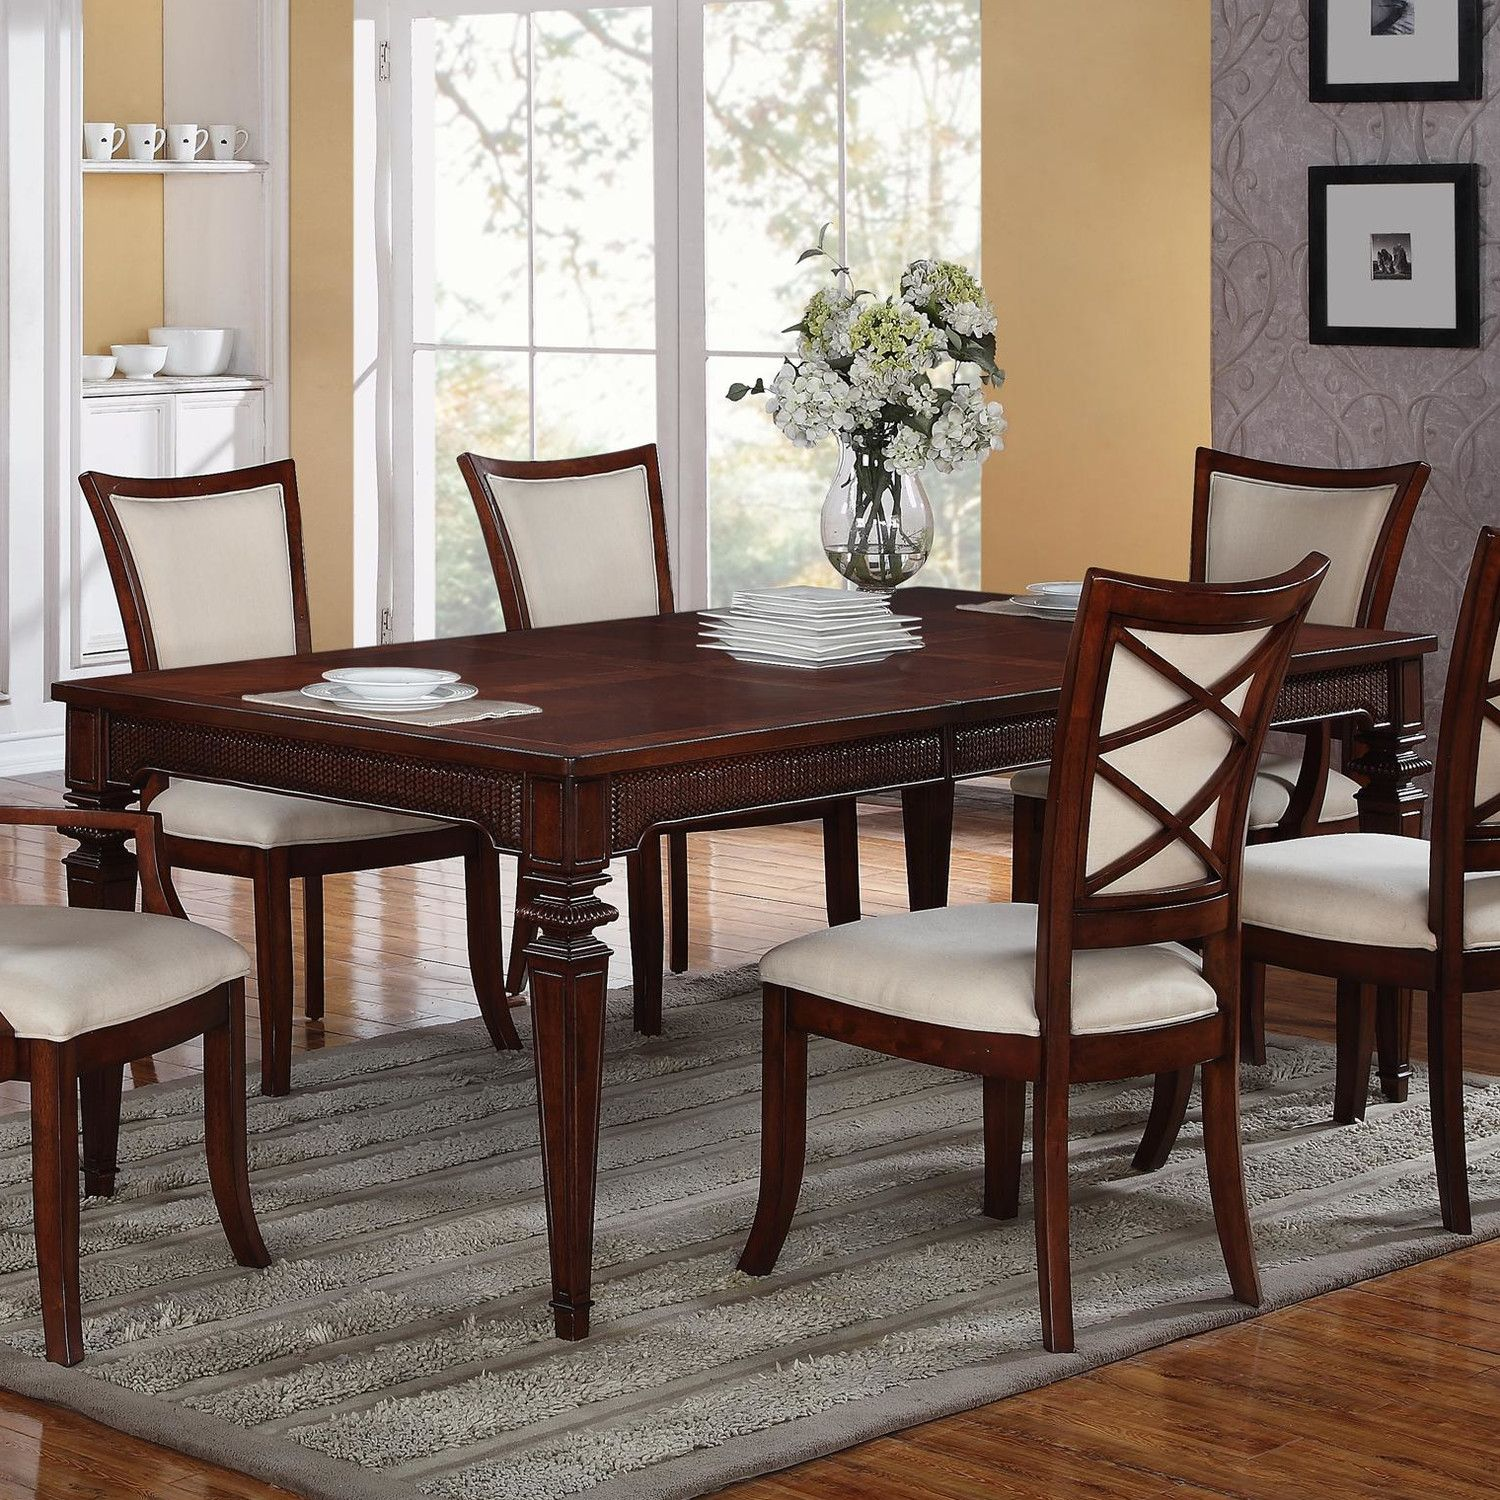 Riverside Furniture Windward Bay Dining Table